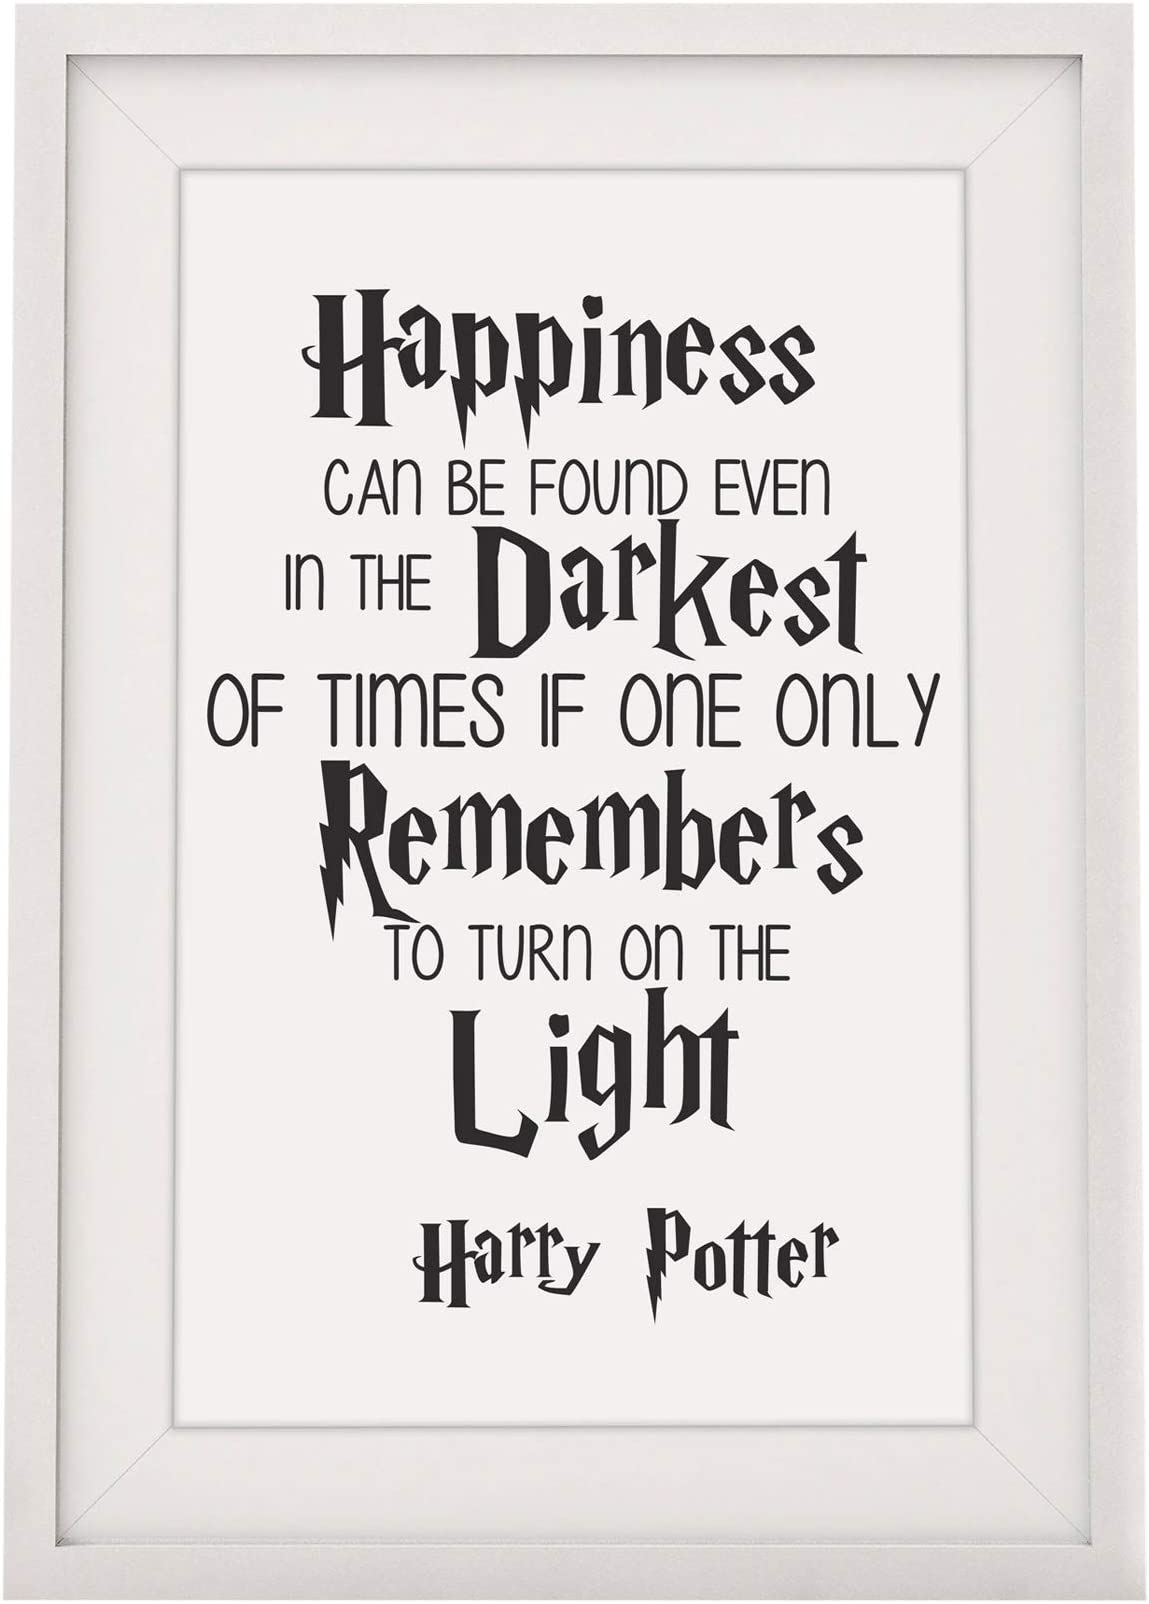 Christmas Harry Potter Light Birthday Unique Gift Happiness Can Be Found